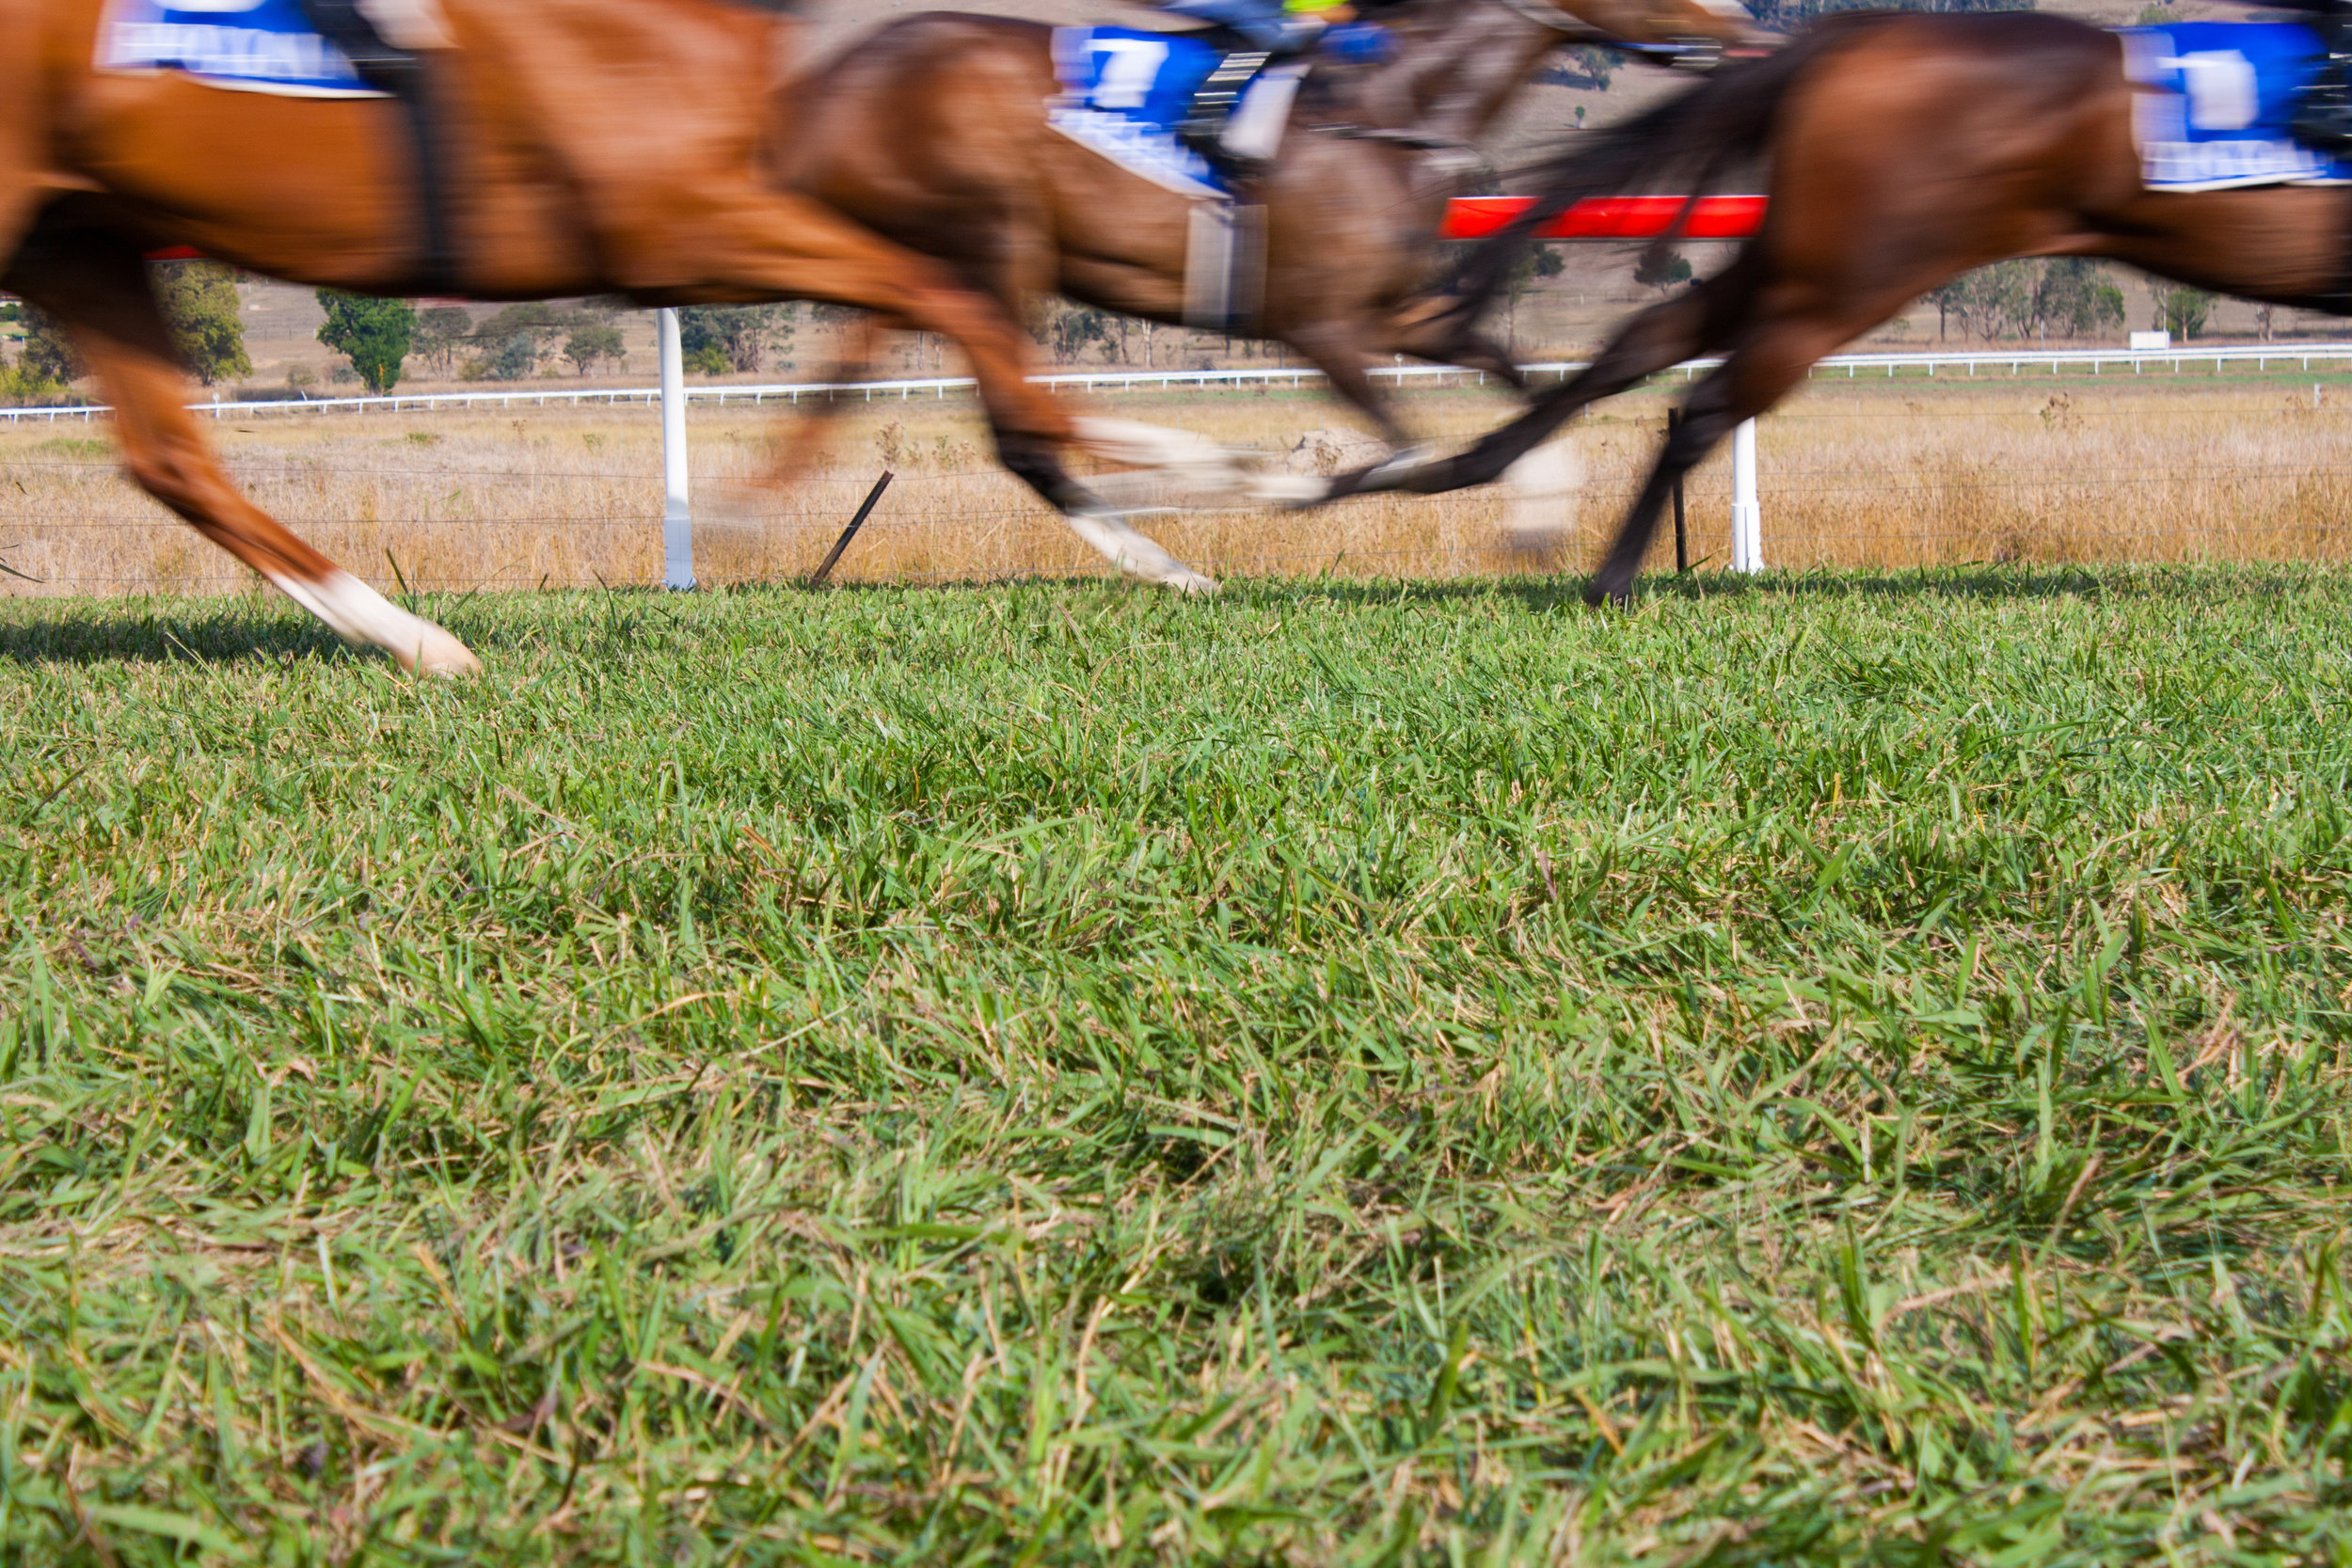 "HBLB Research on Injuries in Flat Racing: Nature versus Nurture    Note: This research for this article, reprinted from European Trainer, was performed over a 14-year period in Great Britain and therefore only takes into account racing over turf and all-weather surfaces, but we feel that despite not including dirt statistics, the information is thought-provoking and of interest to our North American readers, especially with the increase in turf racing particularly in the U.S.       Musculoskeletal injuries are an inherent risk of horseracing, and they are the primary cause of Thoroughbreds failing to train and race, or even retiring altogether. In addition to the evident equine welfare concerns, racehorse injuries also have economic consequences and impact on jockey safety. The industry remains committed to investigating causes of injury and associated risk factors, which can inform strategies aimed at minimizing their occurrence. Advancements in methods of identification, management, and prevention of musculoskeletal disease and injury in Thoroughbreds and improved training and racing environments to enhance the safety, health, and wellbeing of racehorses have long been strategic priorities of the Horserace Betting Levy Board (HBLB)'s veterinary research funding program in Great Britain.     In 2014, the HBLB funded a research team at the Royal Veterinary College in London to undertake a detailed study of injuries and other veterinary events occurring in flat racehorses on race day. The purpose of the project was to establish causes of fatal and non-fatal injuries occurring in British flat racing and to examine associated risk factors. The research also set out to measure heritability of common injury types and conditions, and to investigate genetic and environmental correlations between injury and race performance.    The study team had access to detailed race and performance data from all Thoroughbreds racing on the flat in Great Britain over a 14-year study period from 2000 – 2013. These were then linked to veterinary reports of injury or conditions attended to by a veterinary surgeon on race day over the same time period, provided by the British Horseracing Authority (BHA). Finally, extensive pedigree data were added to enable investigation of heritability of race day injury and genetic correlations between injury types, and between injury and performance.     Descriptive findings    The final 14-year dataset included nearly 68,000 horses making over 800,000 starts in around 77,000 flat races. The majority of races -- 67% of them -- were run on the turf, with 33% of races taking place on all-weather tracks.    Just under 8,000 veterinary events were recorded over the study period, from which an incidence of nine events per 1000 starts was calculated. The most common incidents requiring veterinary attention on the racecourse were soft tissue injuries other than tendon and ligament injuries, e.g. wounds, lacerations, or muscle strains. Unspecified lameness and respiratory conditions were also common, accounting for around a fifth of veterinary reports each. Less than 10% of veterinary events had a fatal outcome, and the overall incidence of fatality was 0.8 per 1000 starts. Although bone injury was cited in only 14% of the veterinary reports overall, they accounted for the vast majority (77%) of the fatalities.    All-weather racing    Racing on all-weather tracks traditionally carries a higher risk of injury than racing on turf, which was reaffirmed in the current analyses. Therefore, the researchers also specifically investigated risk factors for fatality, distal limb fracture, and epistaxis (nose bleeds) in all-weather racing. These analyses were restricted to the ca. 258,000 all-weather starts in the dataset and included additionally collected information from the racecourse clerks on surface types and maintenance. The fatality incidence in all-weather racing was 0.9 per 1000 starts. Distal limb fracture occurred in around 1 in 1000 starts and epistaxis in 1.6 per 1000 starts. Risk factors varied for each outcome, although some factors were similar across outcomes including the going, racing intensity, horse age, age at first start, and horse and trainer performance variables. Generally, older horses and those that had started racing at an older age were at higher risk of an adverse outcome although for fatality, older horses that had started racing as two-year-olds were at highest risk. This association may be due to accumulation of microdamage in bone, which increases with increasing age as an effect of exercise accumulation over time and can ultimately lead to failure.  The finding that horses that start racing at an older age may be at increased risk of injury is not novel, and it has been suggested that those which do not race at two may be prevented from doing so due to underlying clinical problems. Injuries, or other clinical conditions, at an early age are also likely to interfere with training programs, which may result in a lack of musculoskeletal adaptation during a time when the skeleton is most responsive to exercise. Increasing firmness of going and first race start were risk factors for both distal limb fracture and epistaxis, a finding that is consistent with previous studies. Also consistent with previous research was that longer race distances increased the likelihood of fatality but reduced the risk of epistaxis. This is likely to be due to the speed of the race, with faster races inducing greater pulmonary vascular pressure and higher peak loading forces. Epistaxis was also more likely to occur on fibersand surfaces and on second generation Polytrack, as compared to first generation Polytrack.     Risk factors for fatality    In addition to the specific investigations for all-weather racing, the research also considered data from all starts available. This confirmed that the risk of fatality was around 1.5 times higher on all-weather surfaces than turf. Increased firmness of the going, increasing racing distance, increasing average horse performance, first year of racing, and wearing eye cover for the first time all increased the risk of fatality. The latter finding has not been reported previously, and it is currently unclear why wearing eye cover for the first time should increase the risk of fatality. Perhaps this could be due to a change in the horse's depth perception or ability to judge distance, detect changes in the racing surface, or avoid interference by other horses.  Alternatively, it could be that trainers decide to use eye cover in an attempt to enhance performance, with poor performance resulting from subclinical pathology. Such horses would be at higher risk of (fatal) injury, in particular when wearing eye cover for the first time. Further research in this area, particularly investigating when and why eye cover is used in flat racing horses and how eye cover affects the vision and the performance of horses under race conditions, is warranted.     Another novel finding was that horses racing in an auction race were at 1.5 times higher risk of fatality compared with horses not racing in this race type. Auction races are for two- or three-year-olds that were sold at specific public auction sales, and so this finding may reflect aspects of the quality of horses racing in this race type, which is difficult to measure.     It is noteworthy that there was significant variation in horse fatality risk amongst trainers, even after accounting for other risk factors in the analysis. While most trainers with a race day fatality only had one fatality over the study period, other trainers had more. Training practices are likely to play a role and may partly explain this finding, and further research incorporating training and exercise regimens into studies of this nature is sorely needed. Unfortunately, it was not possible to collect and incorporate training data into this large-scale retrospective study, and any such studies would likely have to be prospective and smaller scale, given that the keeping of training records is not compulsory and highly variable between training yards.     Risk factors for distal limb fracture    Separate analyses were also conducted to investigate risk factors for distal limb fracture, the overall incidence of which was 0.8 per 1000 starts. As for fatality, increasing firmness of the going, increasing racing distance, and horses in their first year of racing were at a higher risk of distal limb fracture, 50% of which had a fatal outcome.        Horses from trainers with high average performance but also a high proportion of runners failing to finish were more likely to sustain a fracture than horses from trainers with lower average performance.  As for fatality, training regimens may also play a role in explaining this finding, and it could be that trainers who employ more intense training strategies are more likely to be successful, but also have more injuries to their horses.     Other risk factors for distal limb fracture included sex, with uncastrated male horses being at highest risk, and older age. Race type was also associated with distal limb fracture, with horses in claiming and seller races being at higher risk. The reasons for this are unclear but may be related to the type and quality of horses in such races, or their being entered into these races due to previous poor performance, which may be related to underlying subclinical injury.     Heritability of injuries and other race-day veterinary events    Heritability is defined as the proportion of variation between individuals in a population that is due to genetic variation. This number can range from 0 (no genetic contribution) to 1 (all differences in a characteristic or trait reflect genetic variation). In this study, the heritability of 10 outcomes was calculated: fracture, tendon and ligament injury, joint injury, fatality, cardiac conditions, epistaxis, metabolic conditions, and 'gait observations' (unspecified lameness). Heritability estimates were adjusted for all environmental (i.e. non-genetic) risk factors identified from the previous analyses. Results showed that heritability estimates of race day veterinary events ranged from 0.06 for gait observations to 0.19 for tendon/ligament injury. These estimates are considered low to moderate, but they suggest that 19% of variation between individuals in tendon/ligament injury outcome is due to genetic variation.  Genetic contributions to tendon injury have been identified in previous studies, in both horses and man.     Correlations between injuries and between injury and performance    The purpose of this analysis was to establish whether different types of injury were correlated within sires, trainers, or jockeys. In other words, are sires whose offspring is susceptible to e.g. fracture also more likely to have tendon-injury susceptible offspring, or do trainers with more fractures in their horses also have more (non-fracture) joint injury events recorded? Similarly, we also wanted to find out whether there were correlations between performance measures and veterinary events. Results showed that there was a high correlation between fatality and fracture at all levels (sire, trainer, and jockey level, although less so in the latter). This is somewhat unsurprising, given that fracture was the main cause of fatality. All other veterinary-event-to-veterinary-event correlations were low. Career length, career earnings, and race value were considered as measures of racehorse performance. No significant correlations were identified between these performance measures and veterinary events.     Implications of the findings    This large-scale study has provided up-to-date information on veterinary events and causes of fatality occurring in flat racing Thoroughbreds in Great Britain. Results can serve as a baseline for monitoring trends over time and evaluate the effect of potential interventions.     Risk factor analyses confirmed a number of factors that had previously been identified as increasing injury or fatality risk, such as racing on all-weather surfaces, increasing race distance, and firmness of the going. However, novel risk factors were identified for each outcome evaluated, including wearing eye cover for the first time, which increased the risk of fatality; racing in seller or claiming, which increased the risk of distal limb fracture; racing on second-generation Polytrack, which increased the risk of epistaxis in all-weather racing; and measures of trainer performance, which were associated with distal limb fracture. There was also significant trainer variation in race day fatality risk, after accounting for the other fatality risk factors. Although more research would be required to establish the reasons for some of these findings, exploring potential interventions targeted at ""higher risk"" groups may be warranted. Further work is ongoing to establish whether we can better predict adverse outcomes at the individual level, which could lead to more specific interventions in horses identified to be at particular risk in a specific race.          This study has also, for the first time, established the heritability of various outcomes after adjusting for known environmental risk factors. It is also the first time that correlations between different injury types, and between injury and performance, have been quantified. Given that there were no strong correlations between non-fatal injury events, interventions aimed at reducing one type of injury should not adversely affect occurrence of other injury types. Equally, interventions aimed at reducing injury occurrence should not adversely affect performance, given that the correlation between injury and performance was also low.      Acknowledgements    The authors are grateful to the HBLB for funding this important work and for their ongoing commitment to support veterinary research aimed at improving our understanding of issues affecting racehorse health and welfare. We are also indebted to our collaborators at the British Horseracing Authority and Weatherbys for provision of injury, performance, and pedigree data. Our co-worker Ruby Chang is acknowledged for her invaluable contributions to the 'Nature versus Nurture' project."